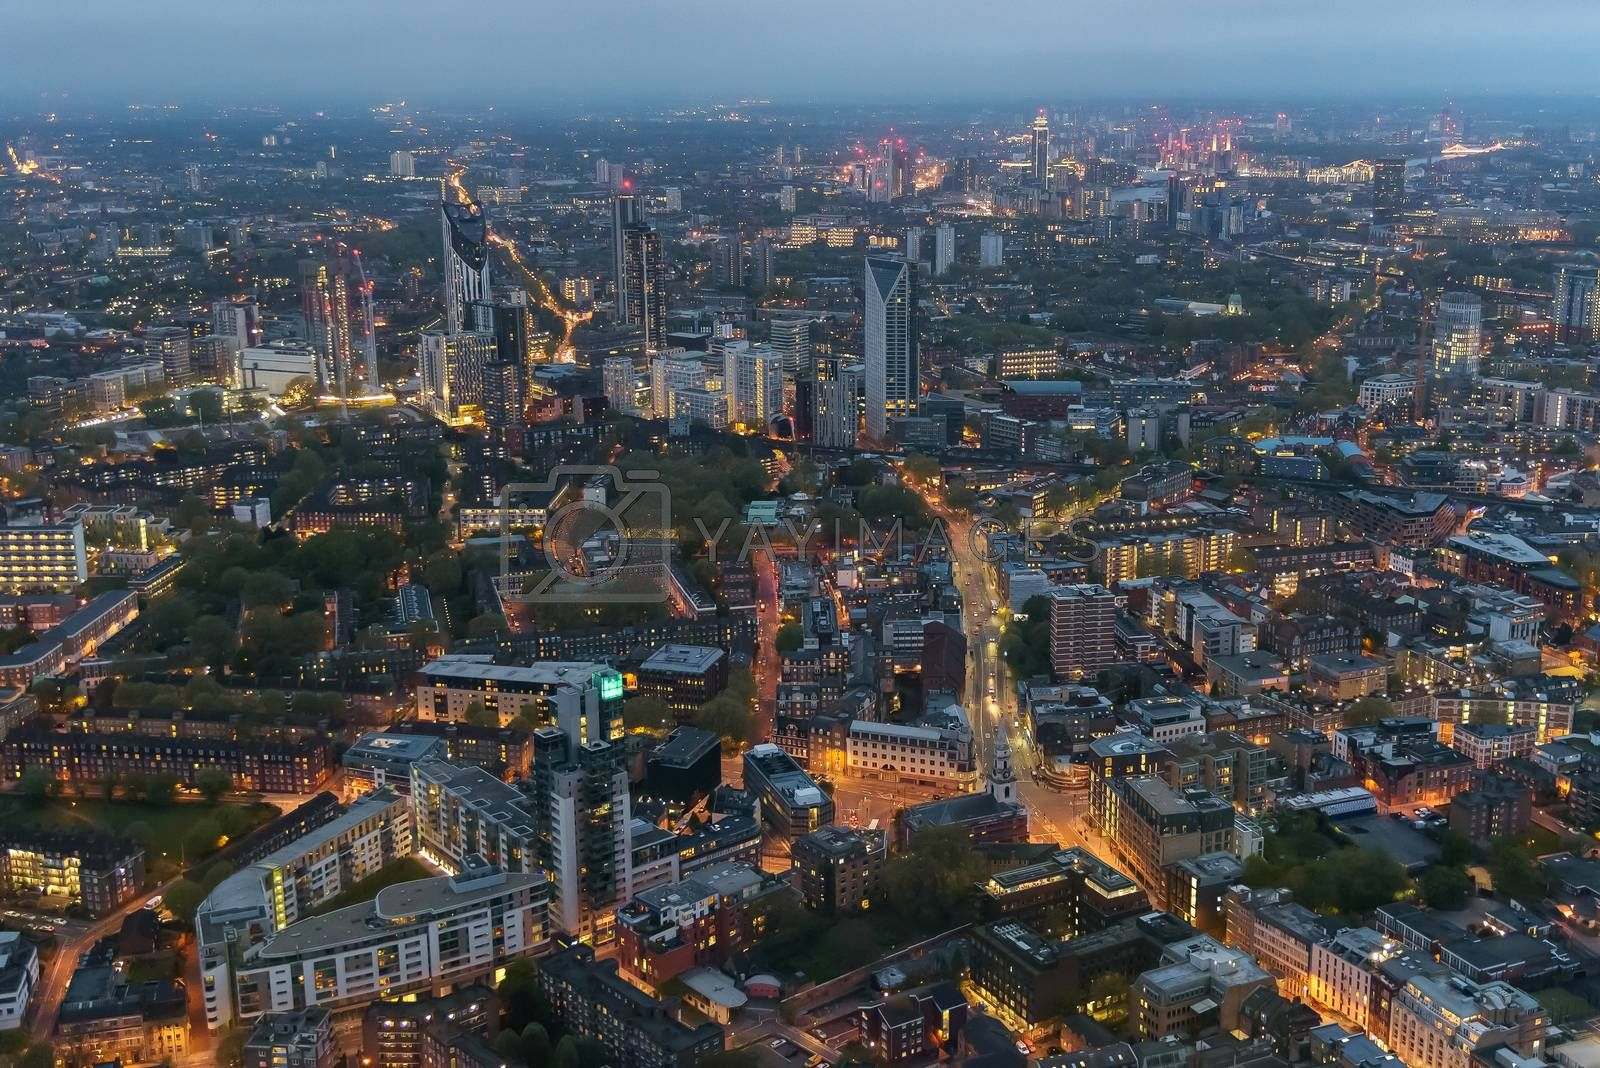 Royalty free image of Aerial view of Southwark district in London at dusk by mkos83